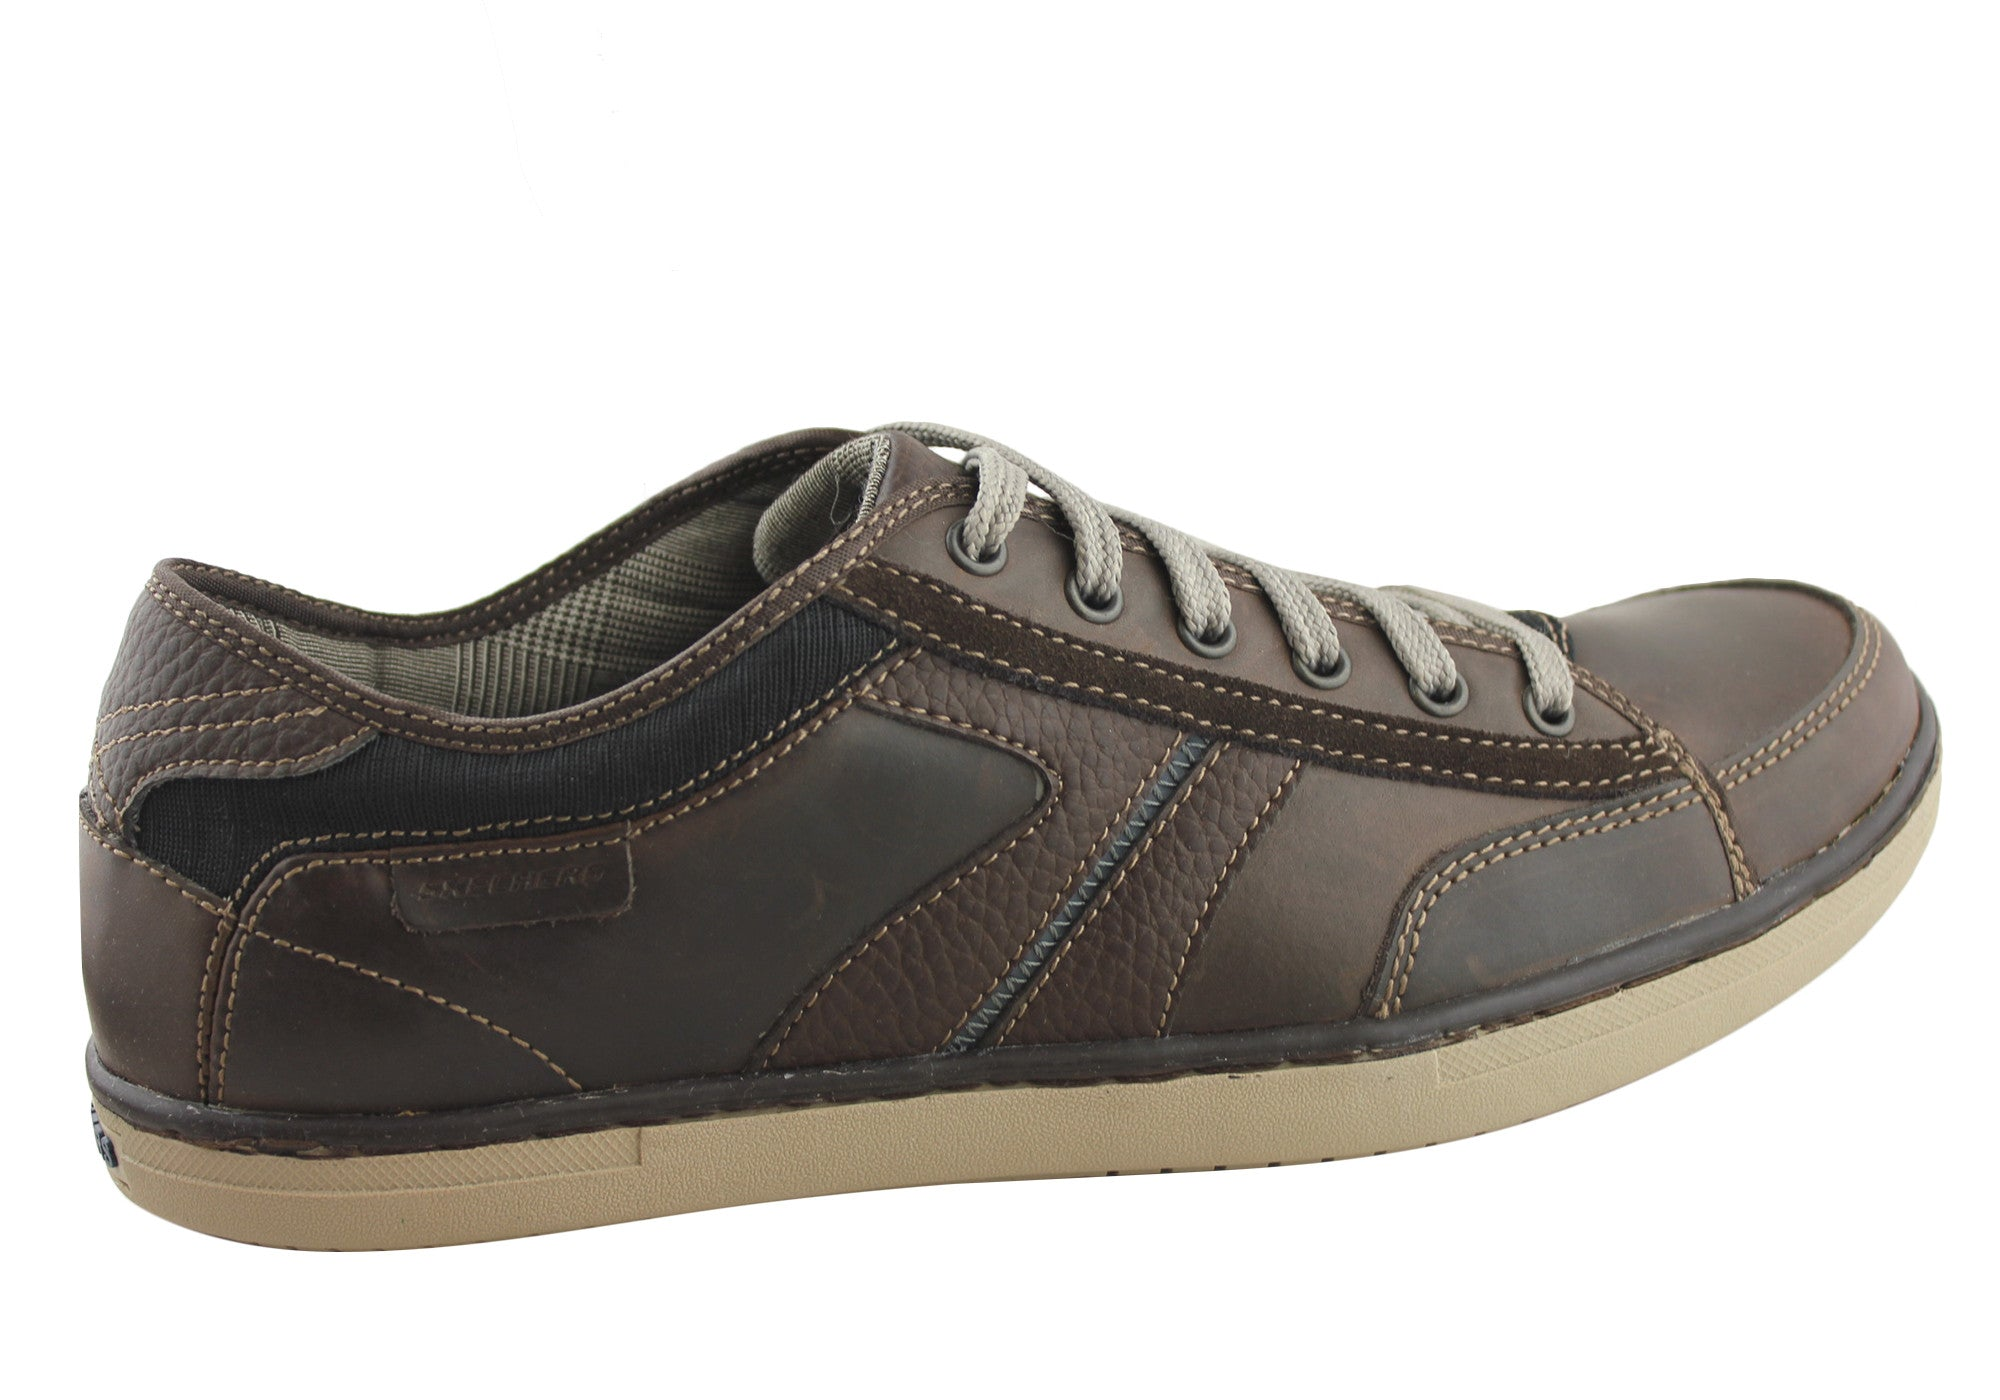 Skechers Serreno Gorden Mens Lace Up Shoes